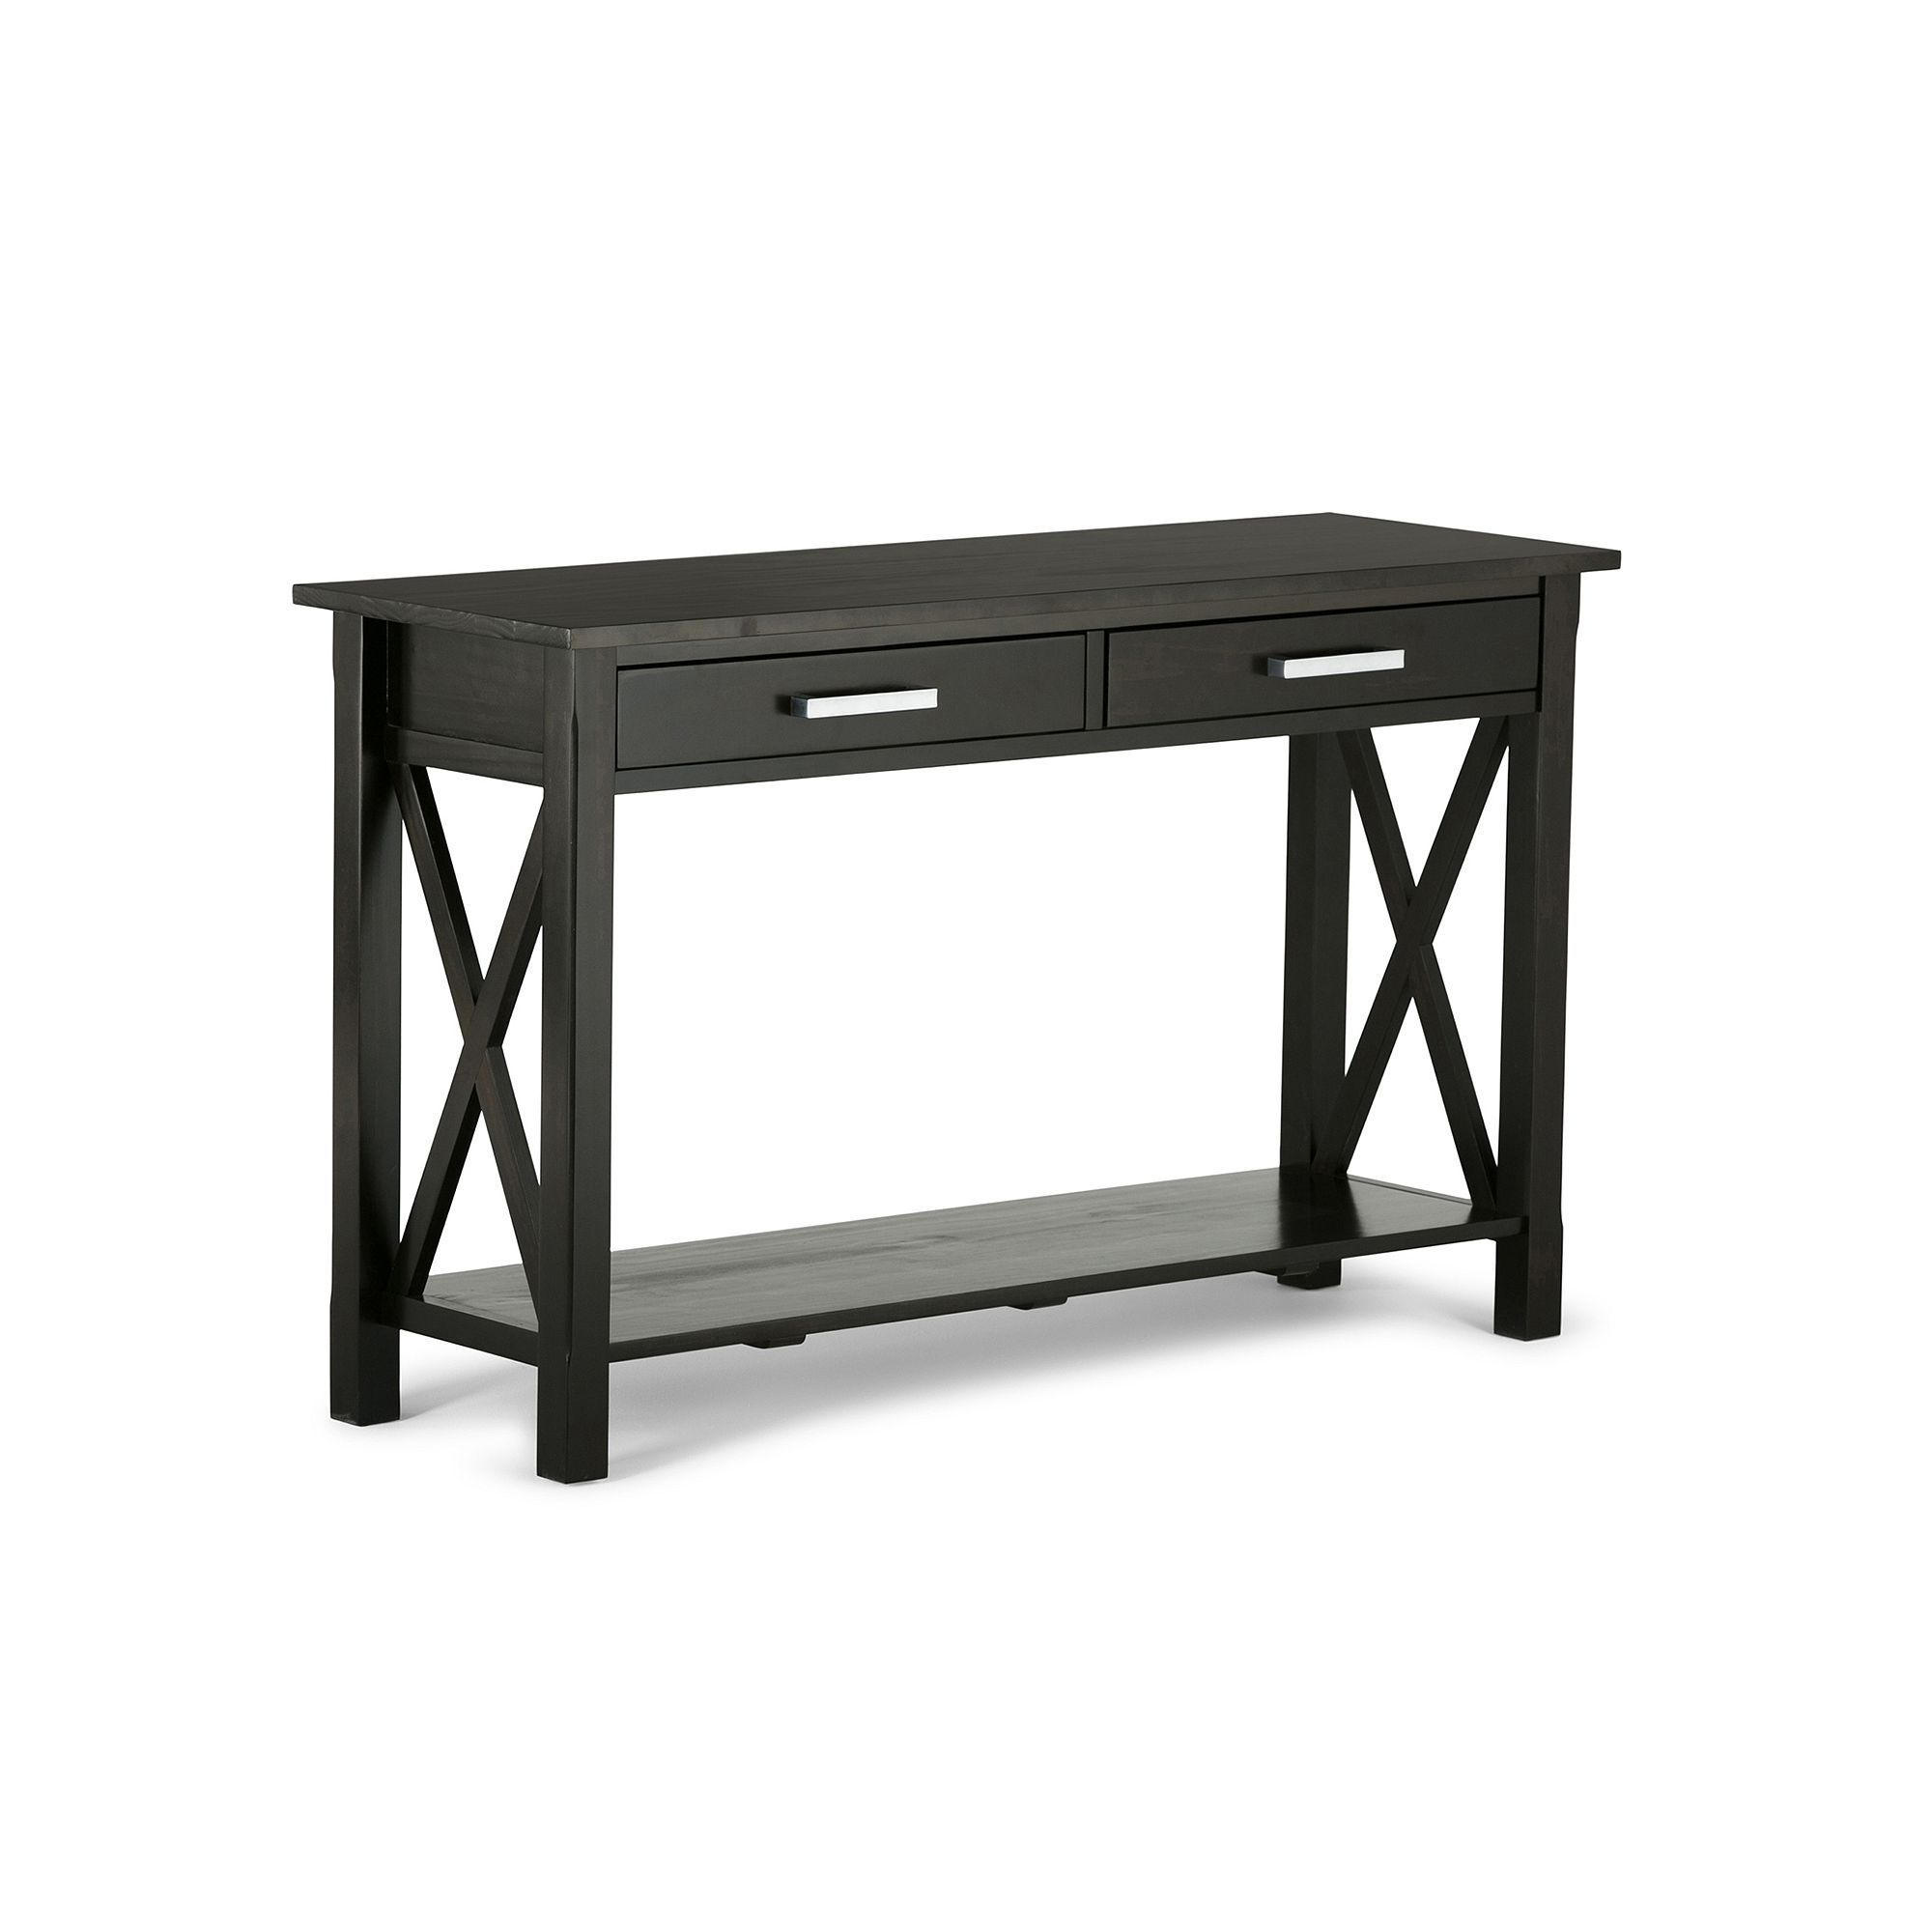 Simpli home kitchener console table brown console tables and products